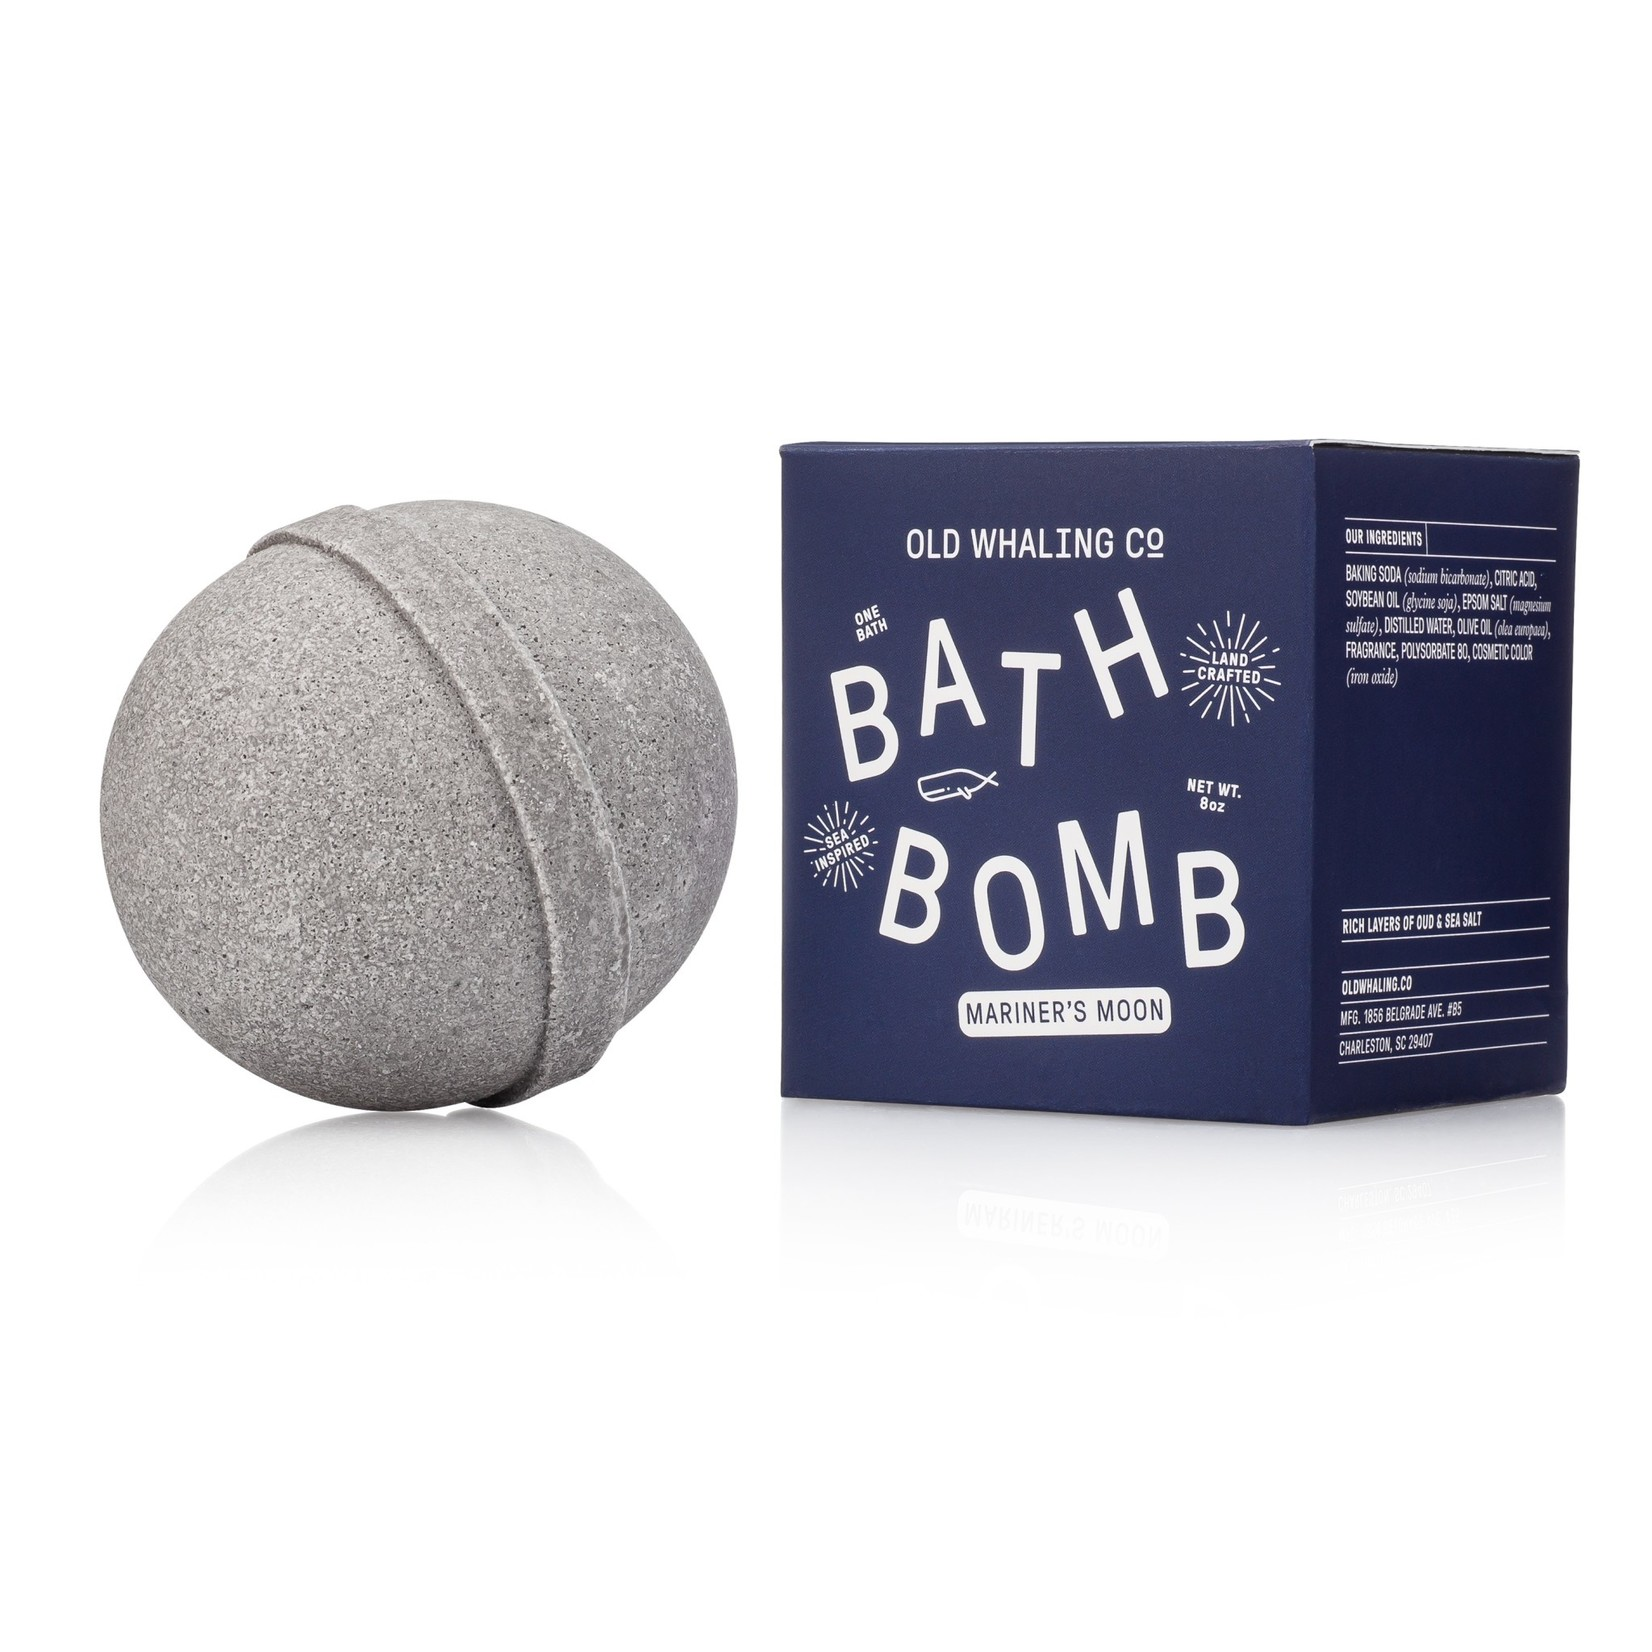 Old Whaling Company Old Whaling Company Bath Bomb Mariner's Moon